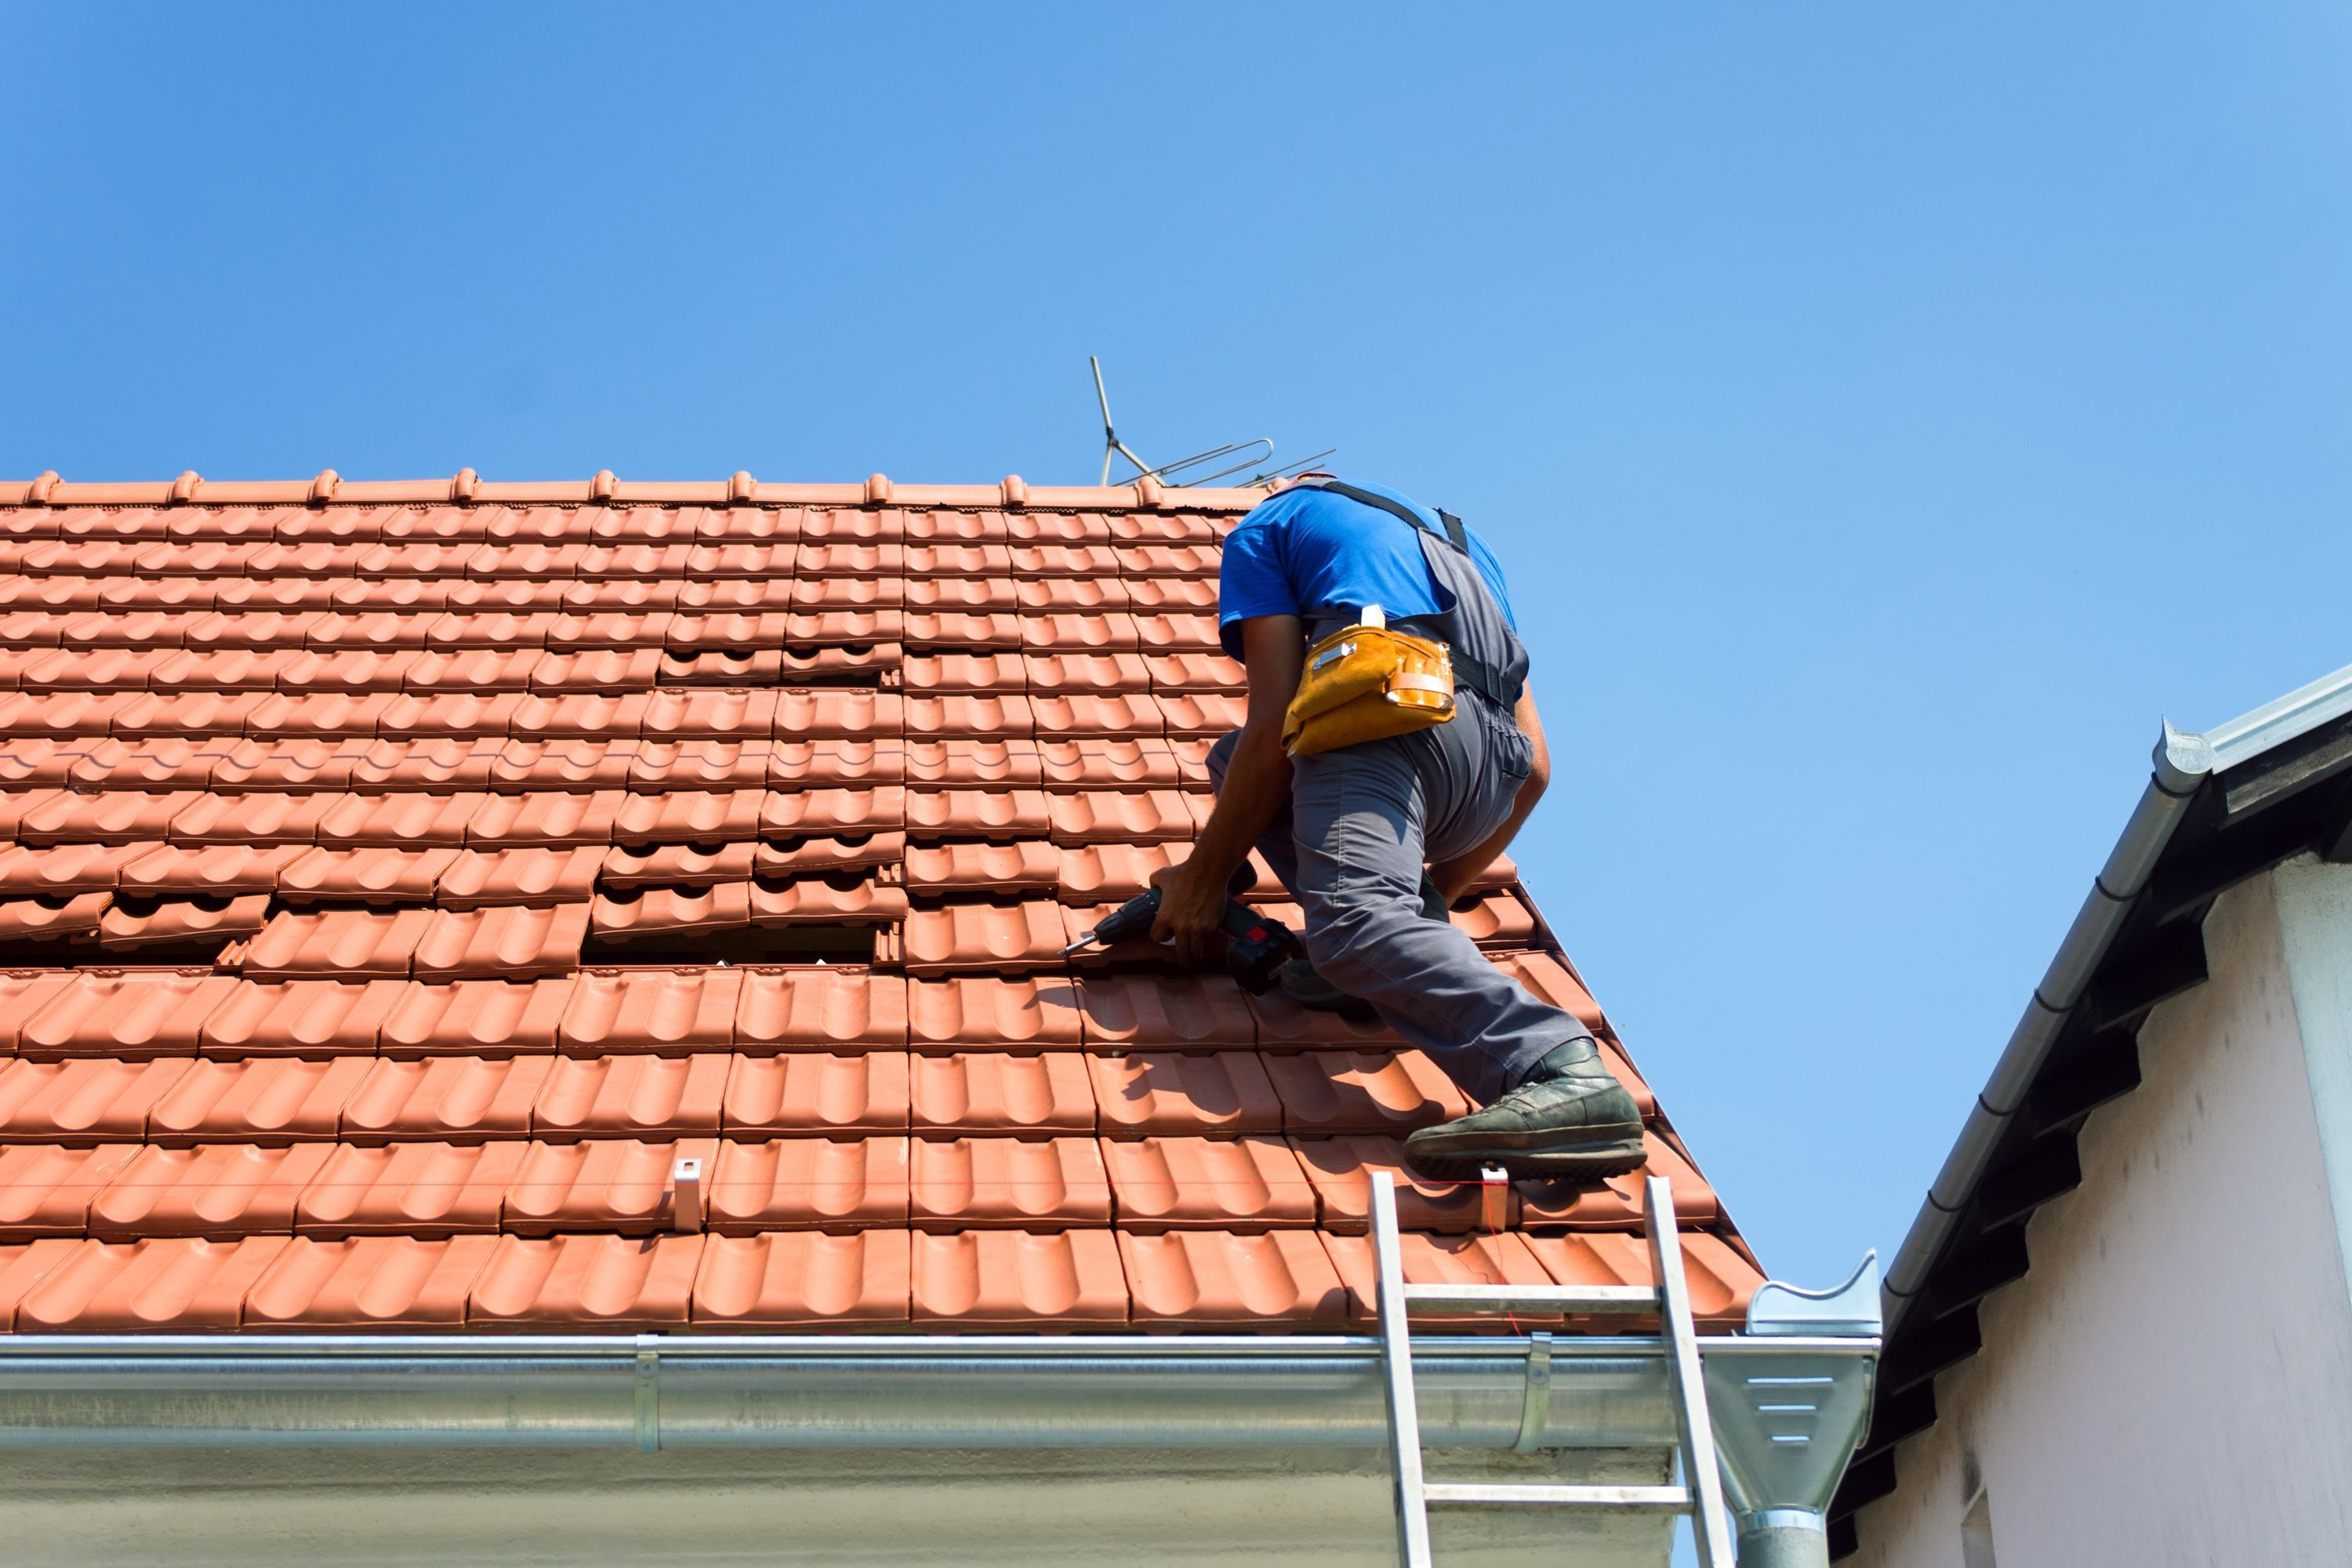 Pin On Arma Roofing And Building